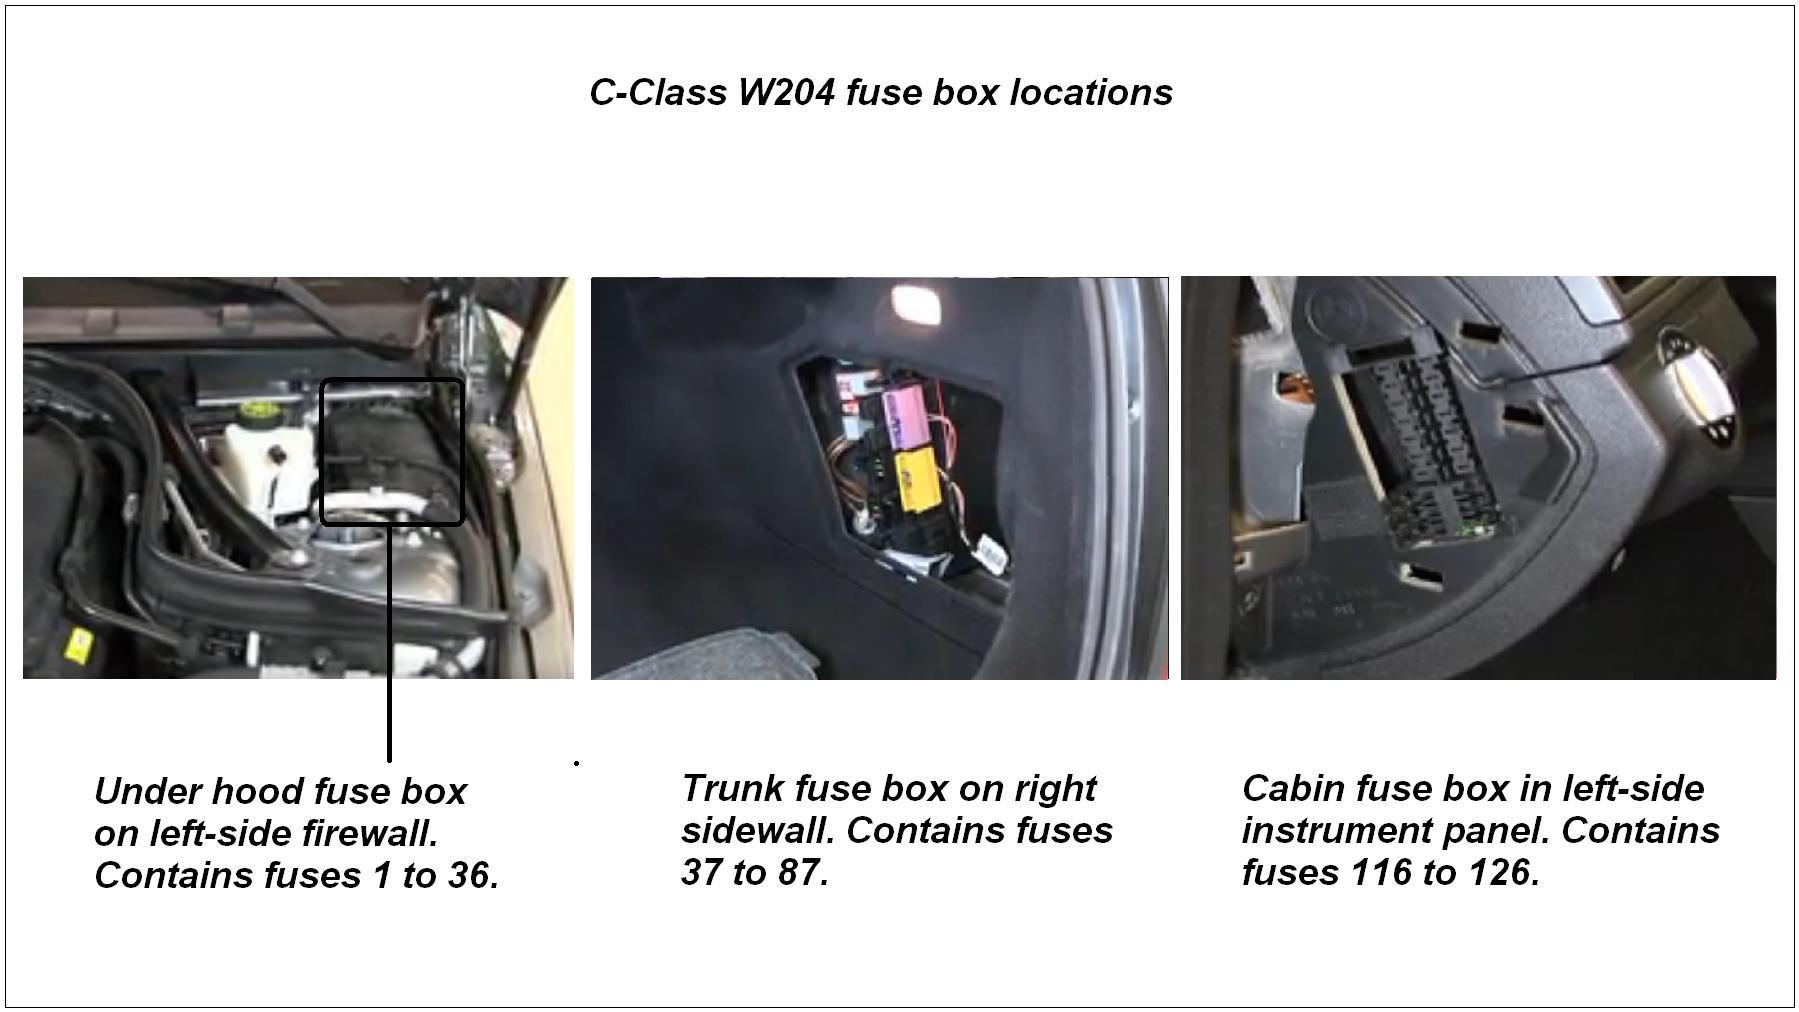 Location of w204 fuse boxes.